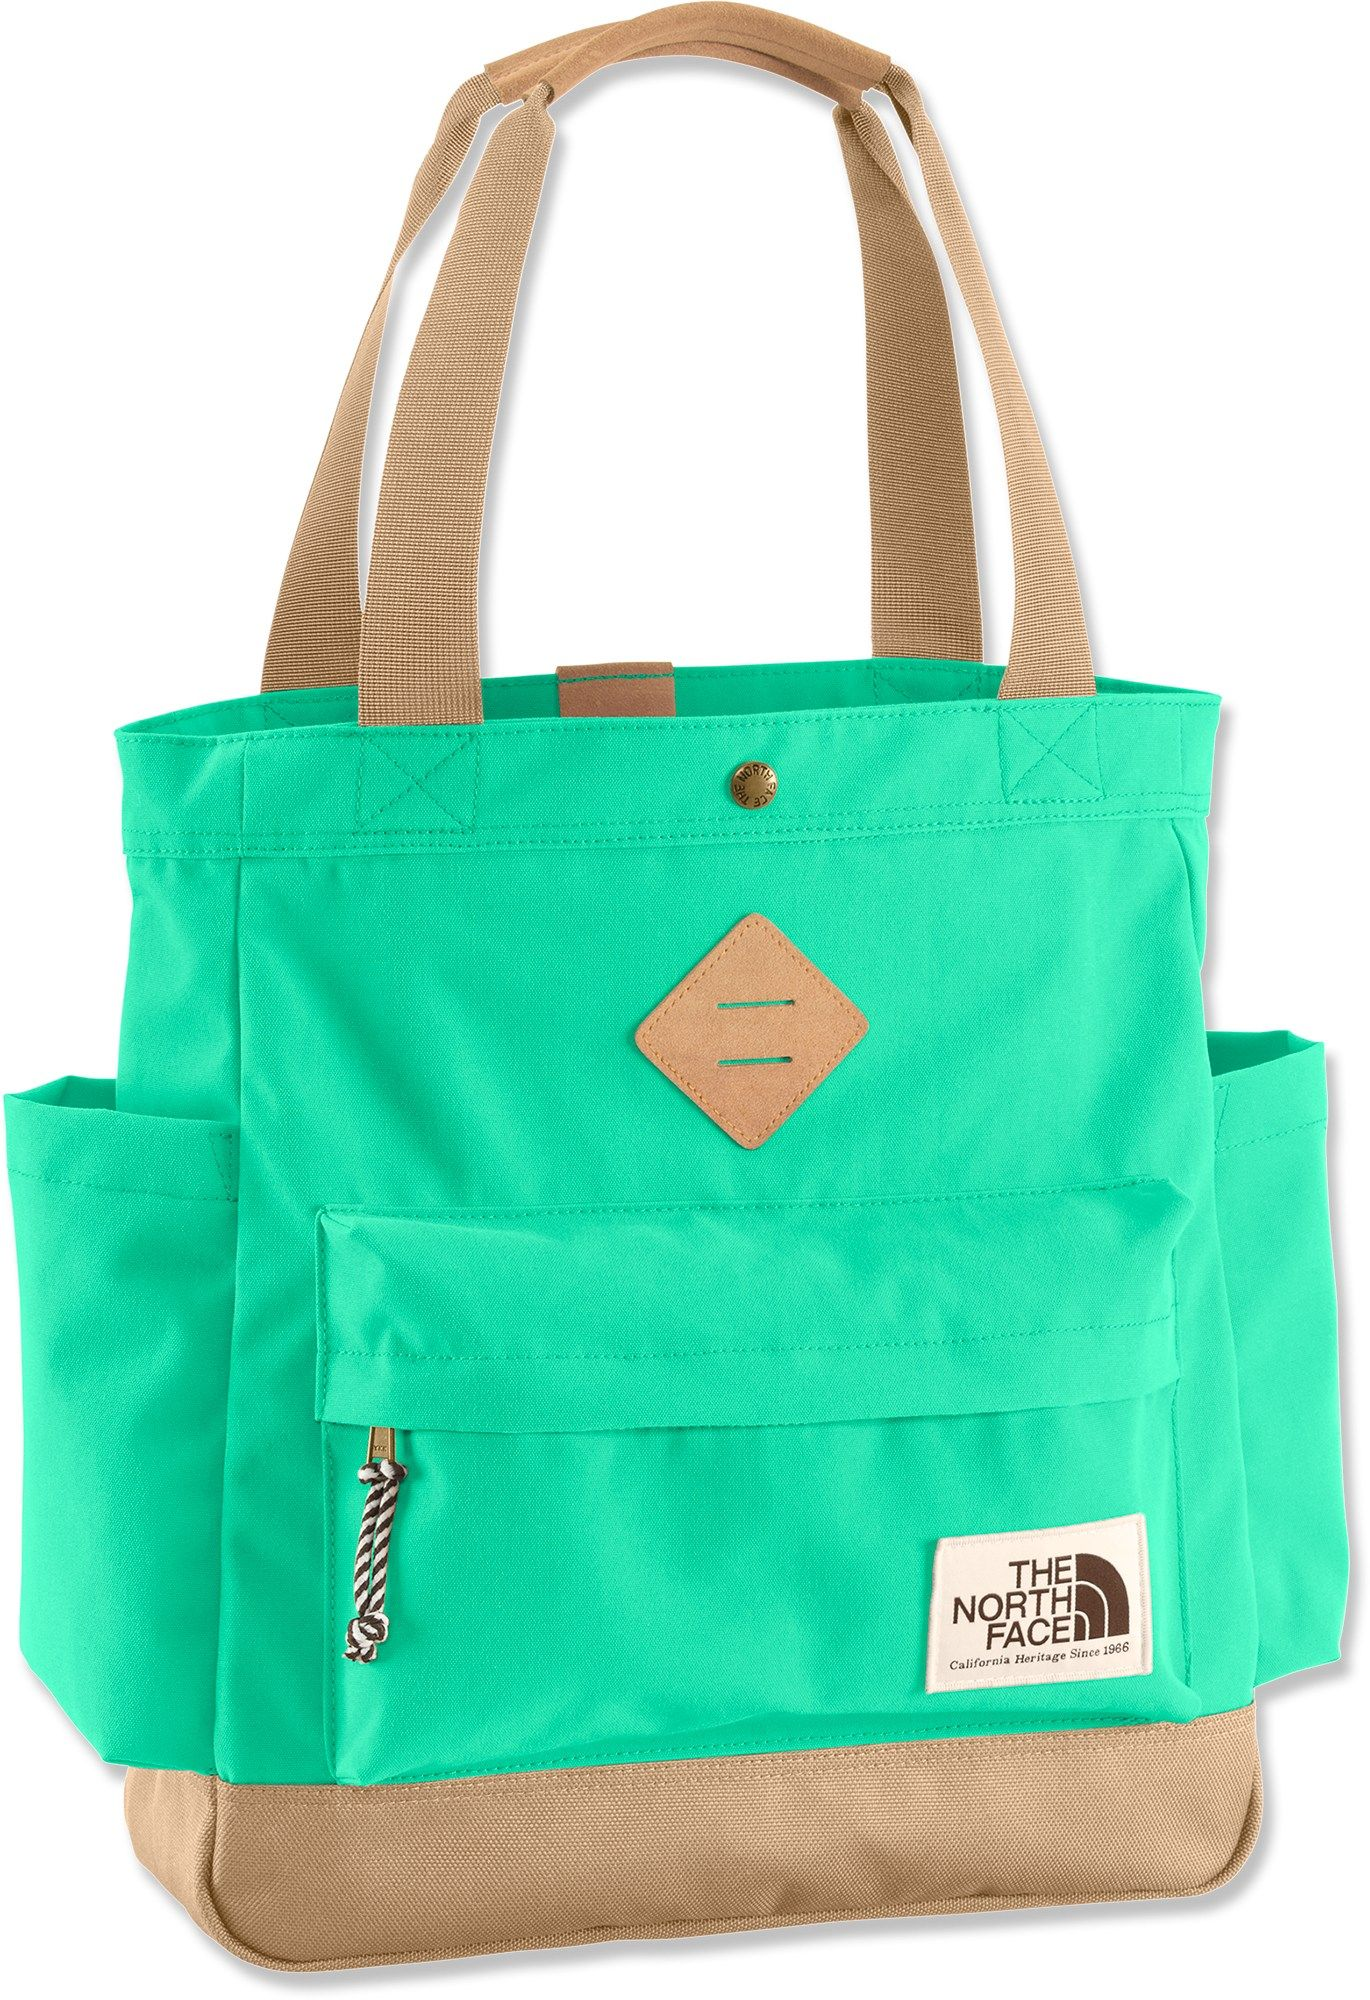 fbfc5be58 Four Point Tote Bag in 2019 | Want | Tote bag, Bags, The north face